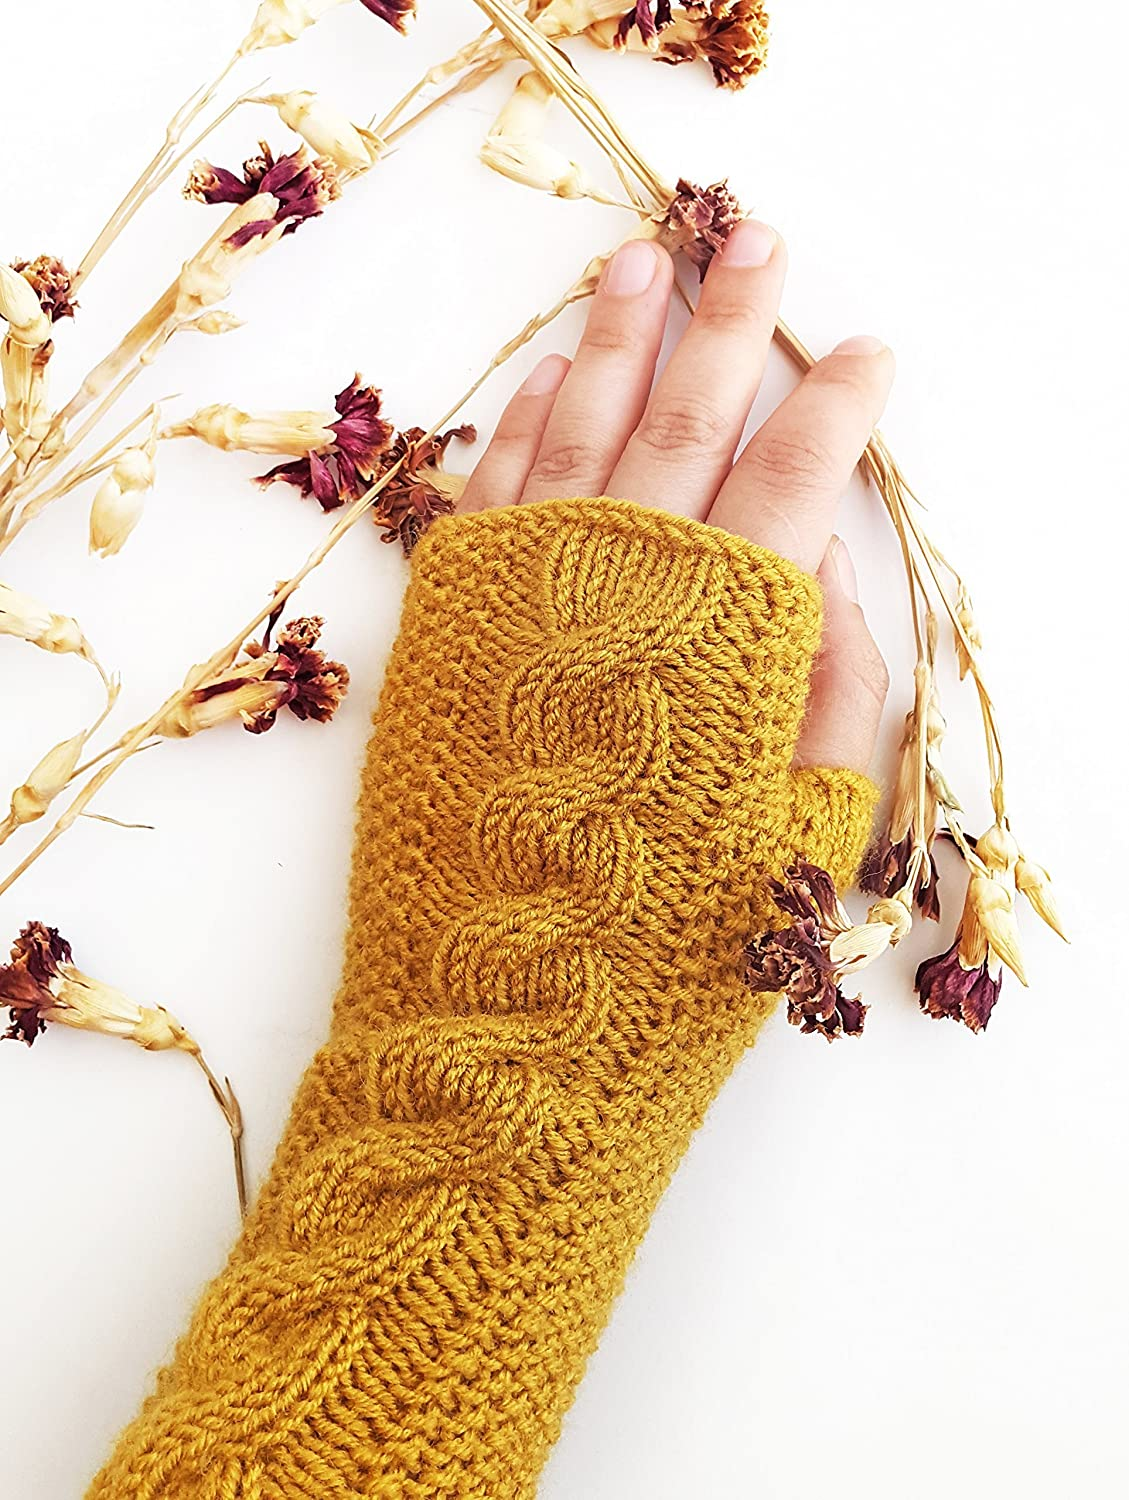 Mustard cable knit gloves - Knit fingerless gloves